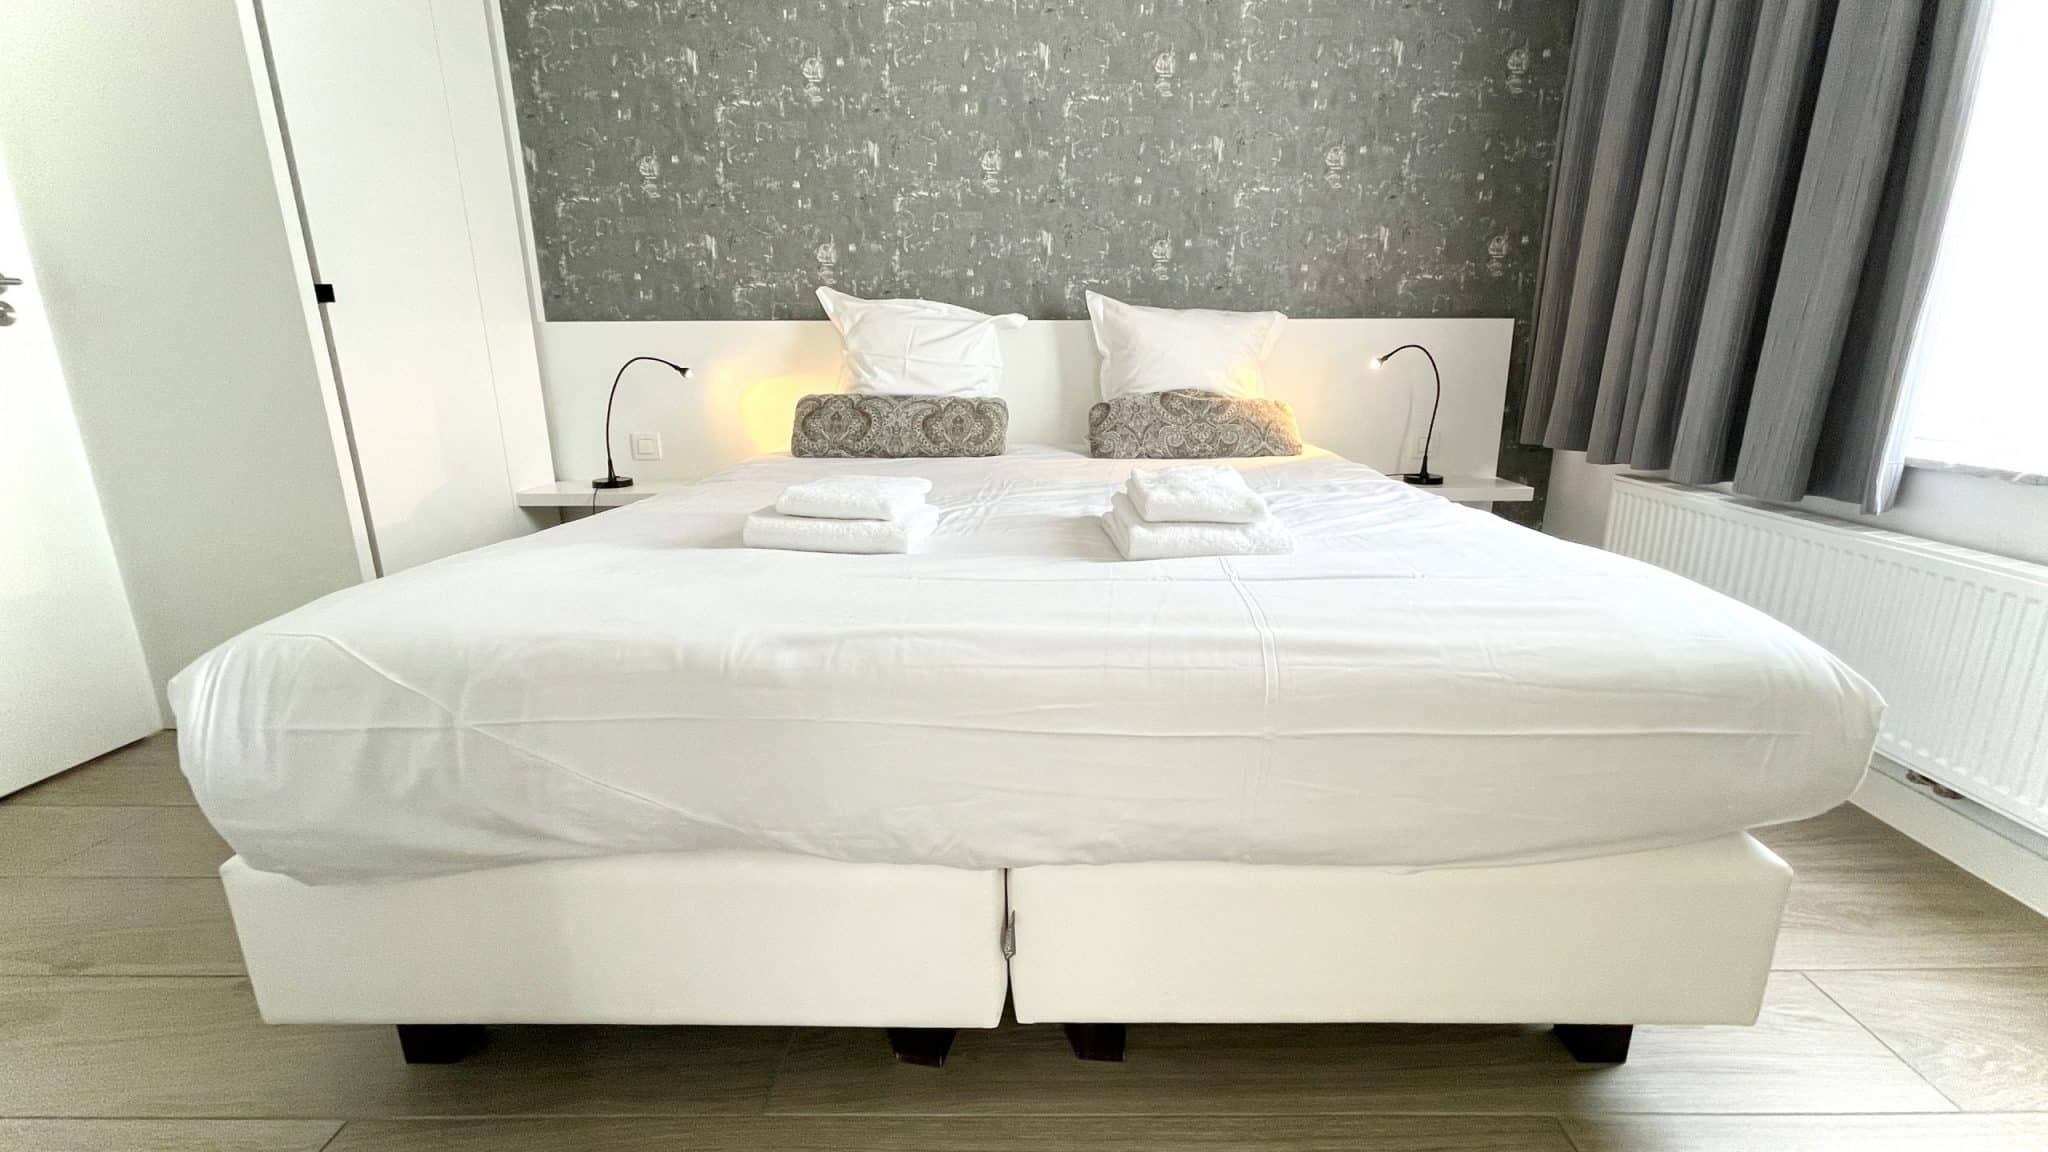 Still searching for a comfortable rental apartment at the Belgian seaside... Is Aparthotel Acropolis what we are looking for? Let's see.